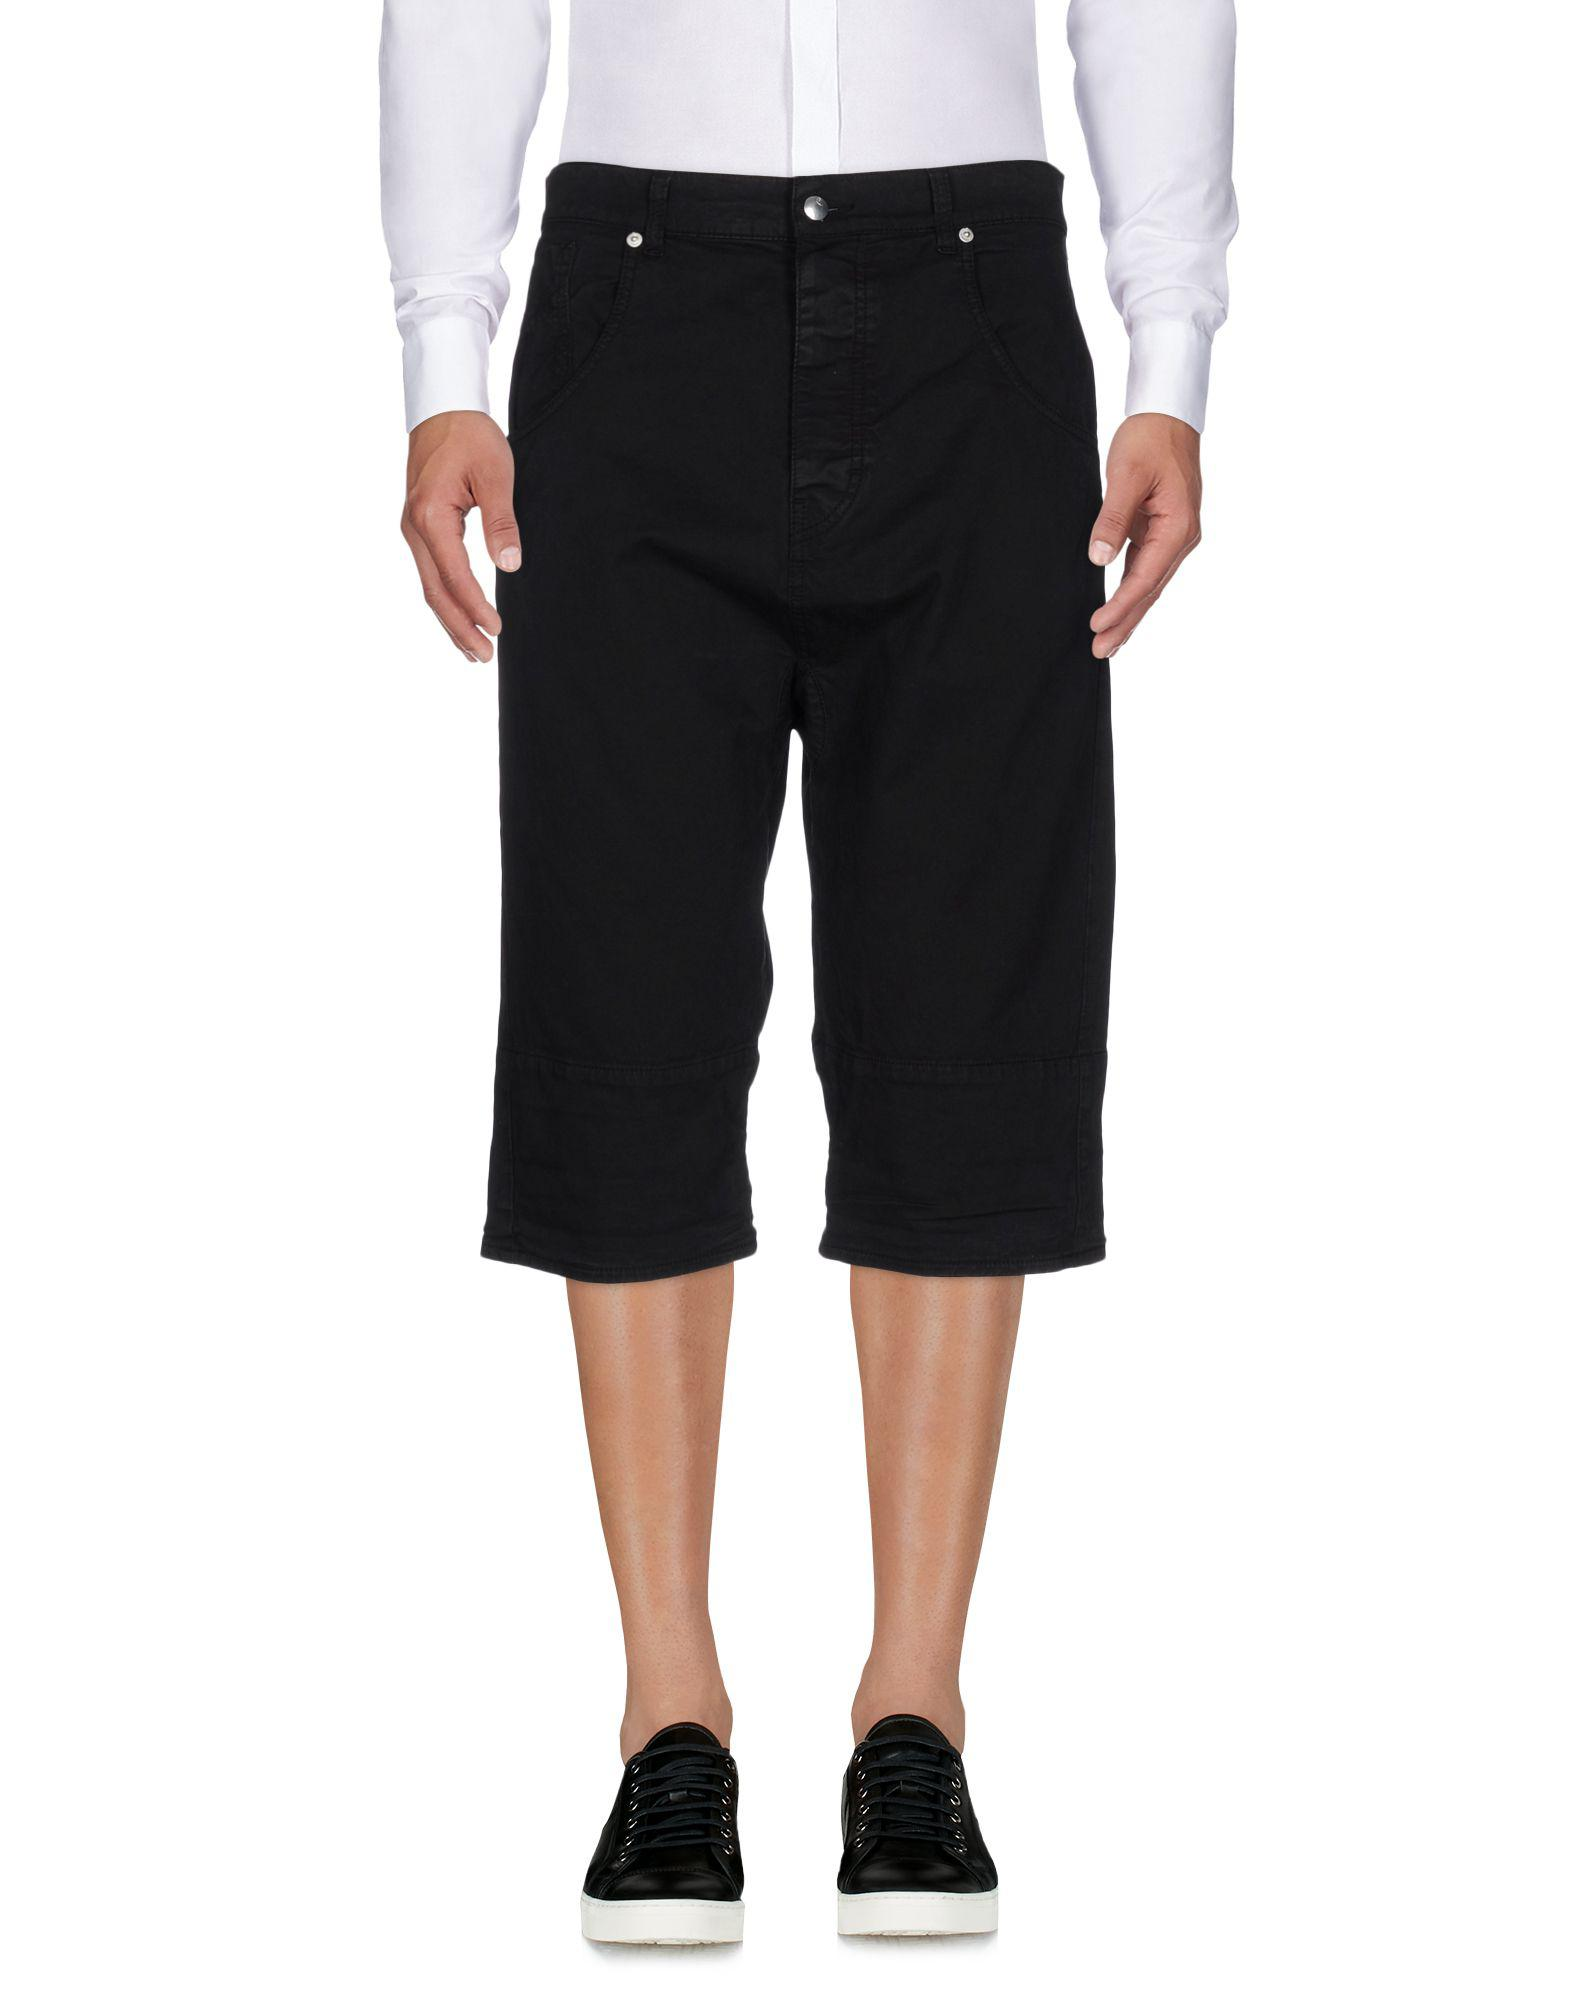 Outlet Low Price Fee Shipping TROUSERS - Bermuda shorts Var/City Free Shipping Eastbay bPsh8